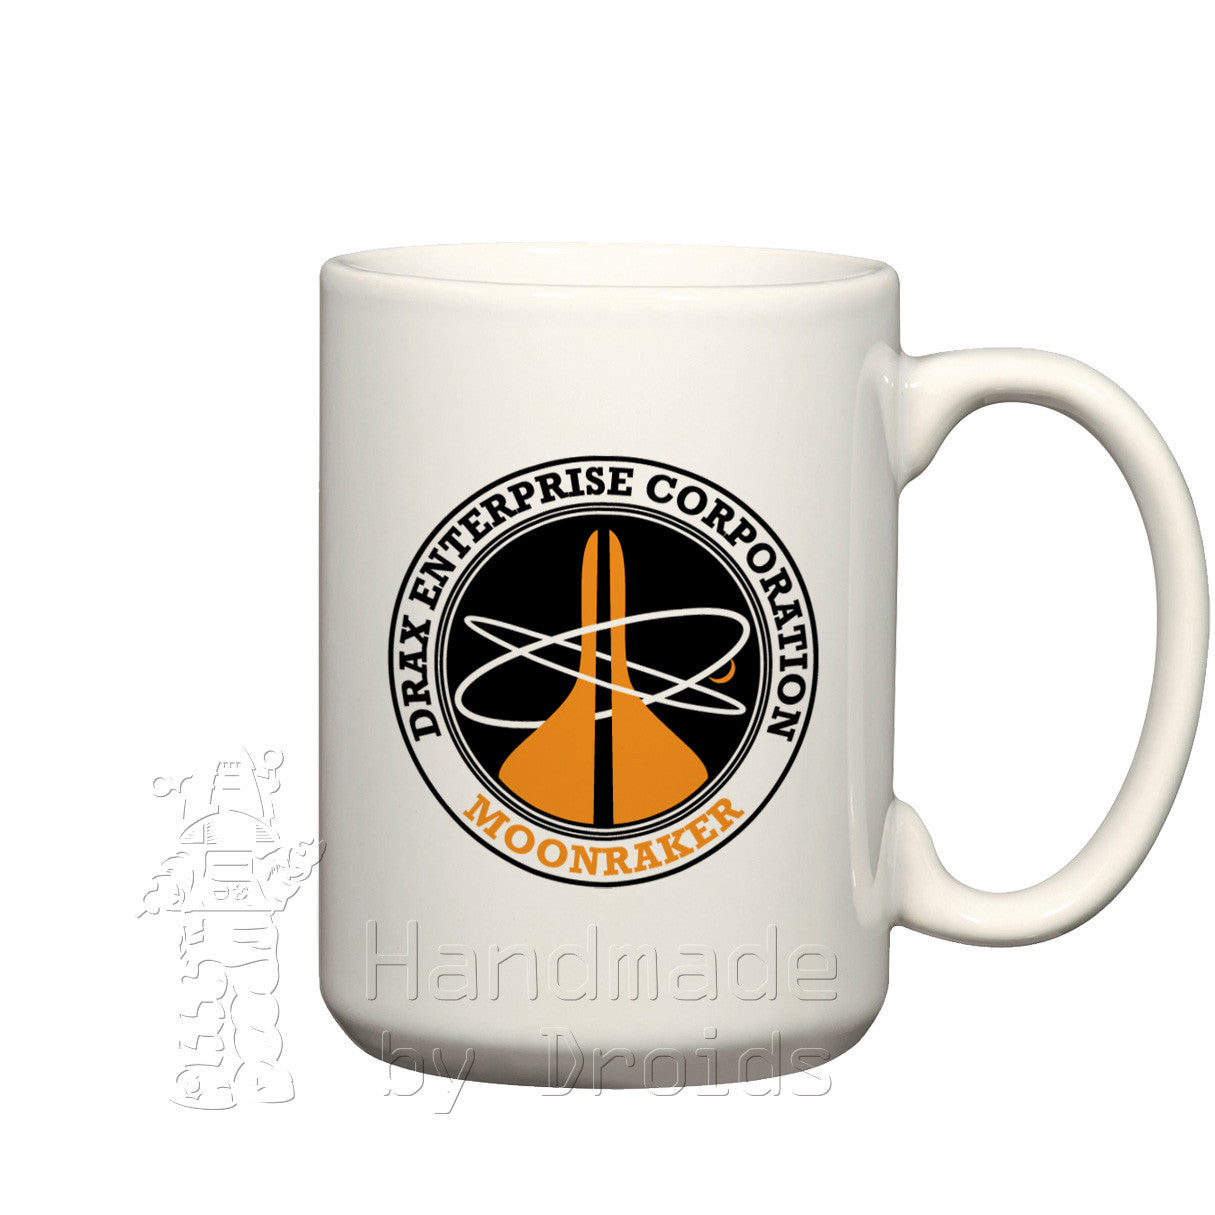 Drax Enterprise Corporation Moonraker logo Mug